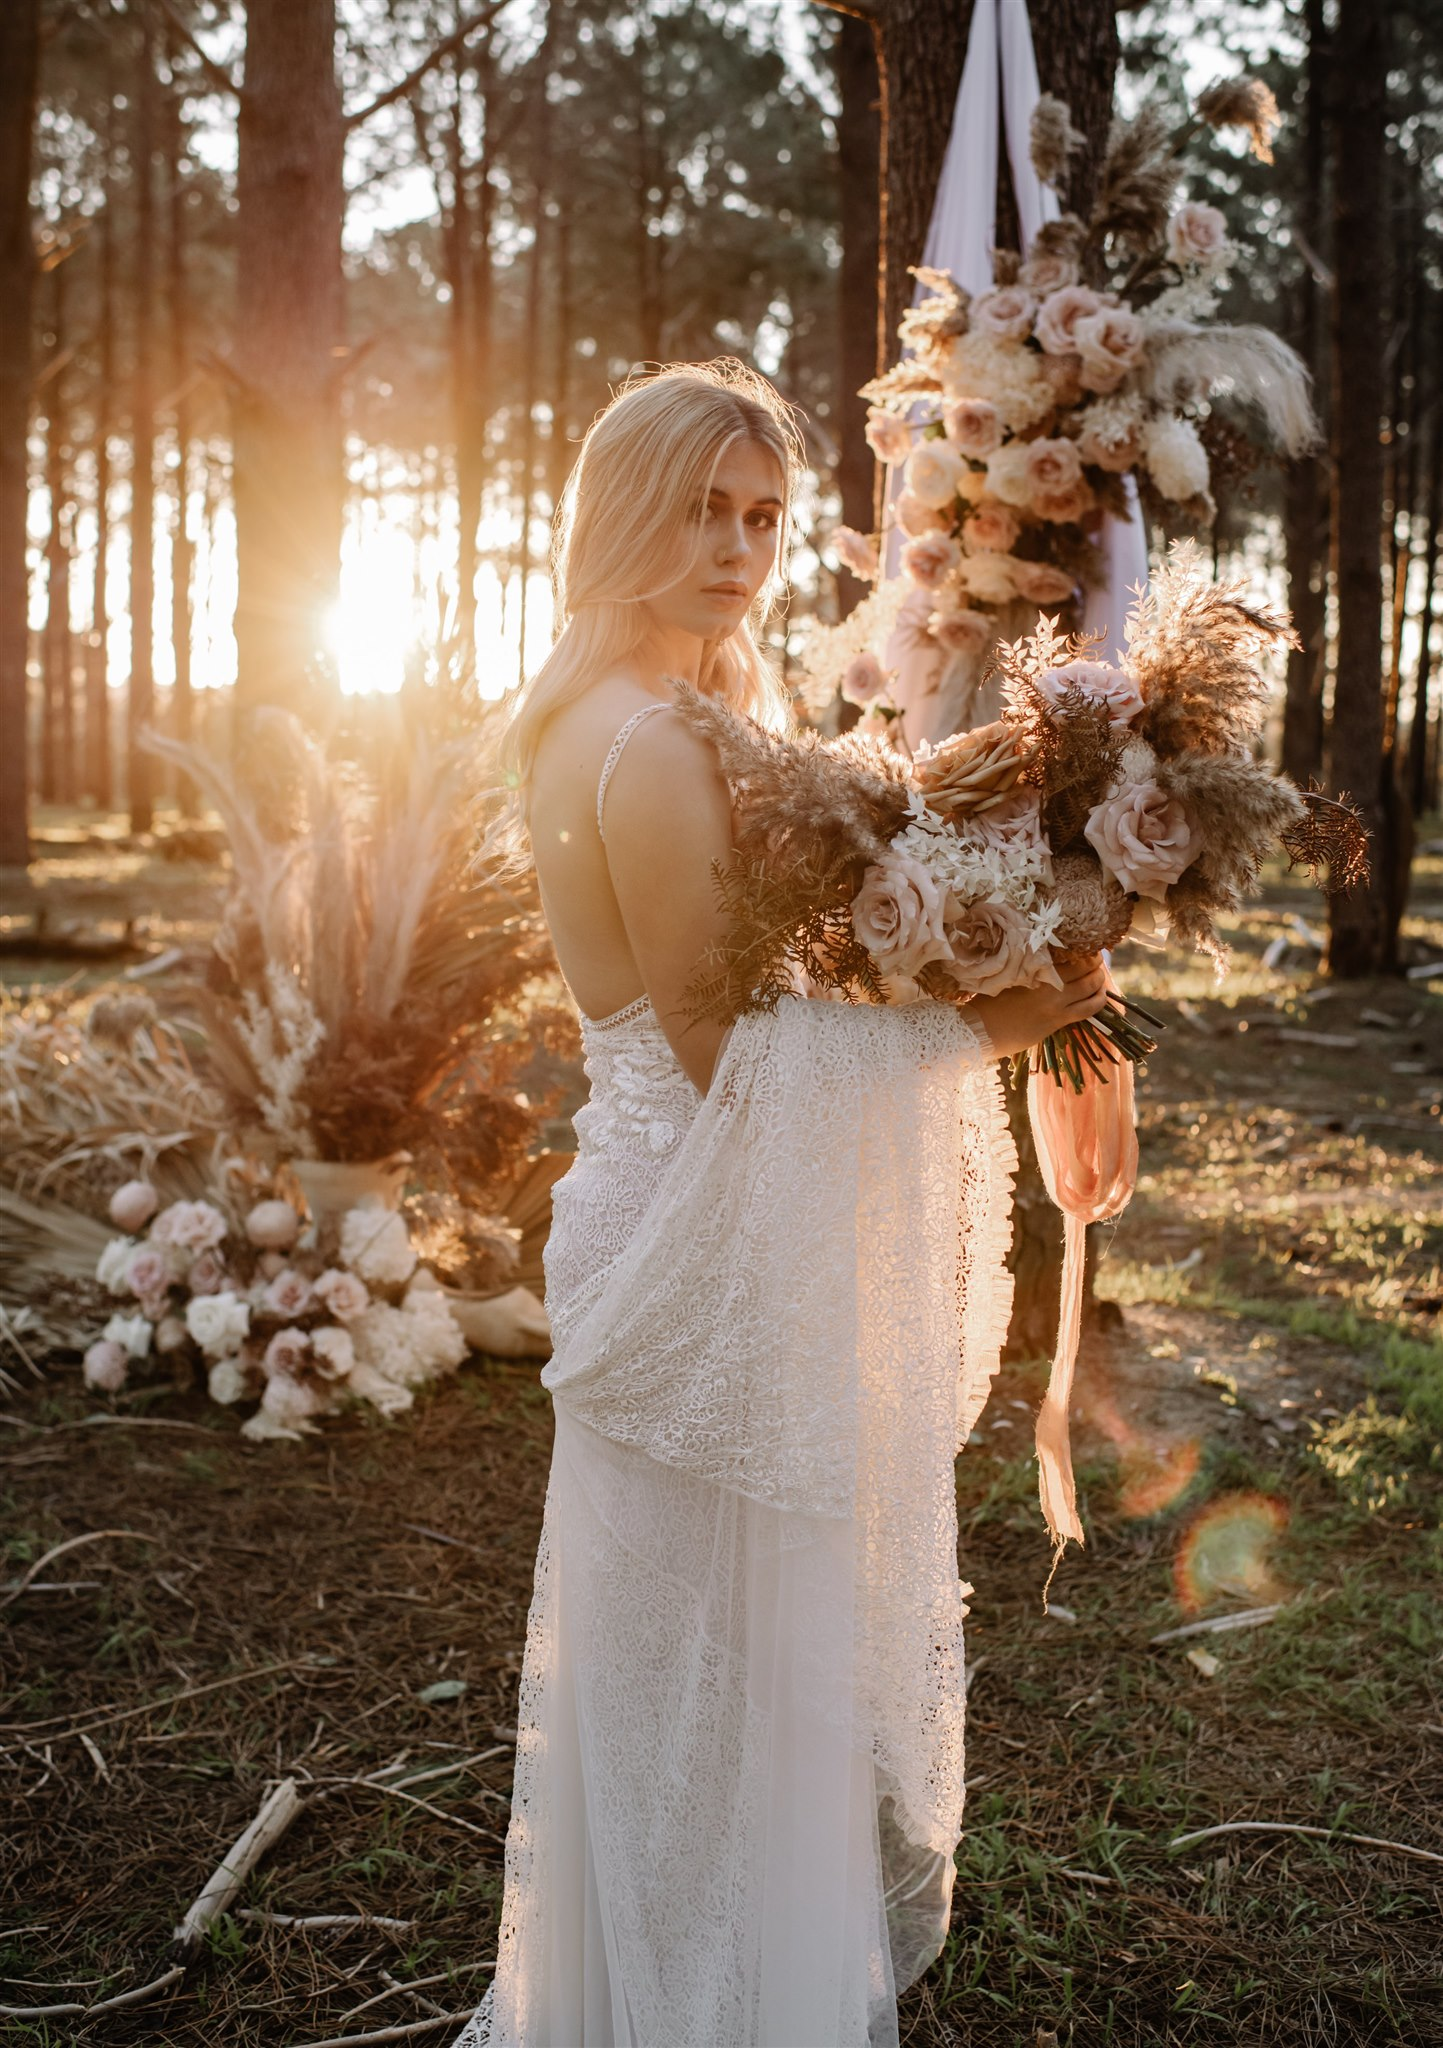 sandie bertrand photography earthy bridal bouquet boho bridal gowns styling florals luxe bohemian vibes